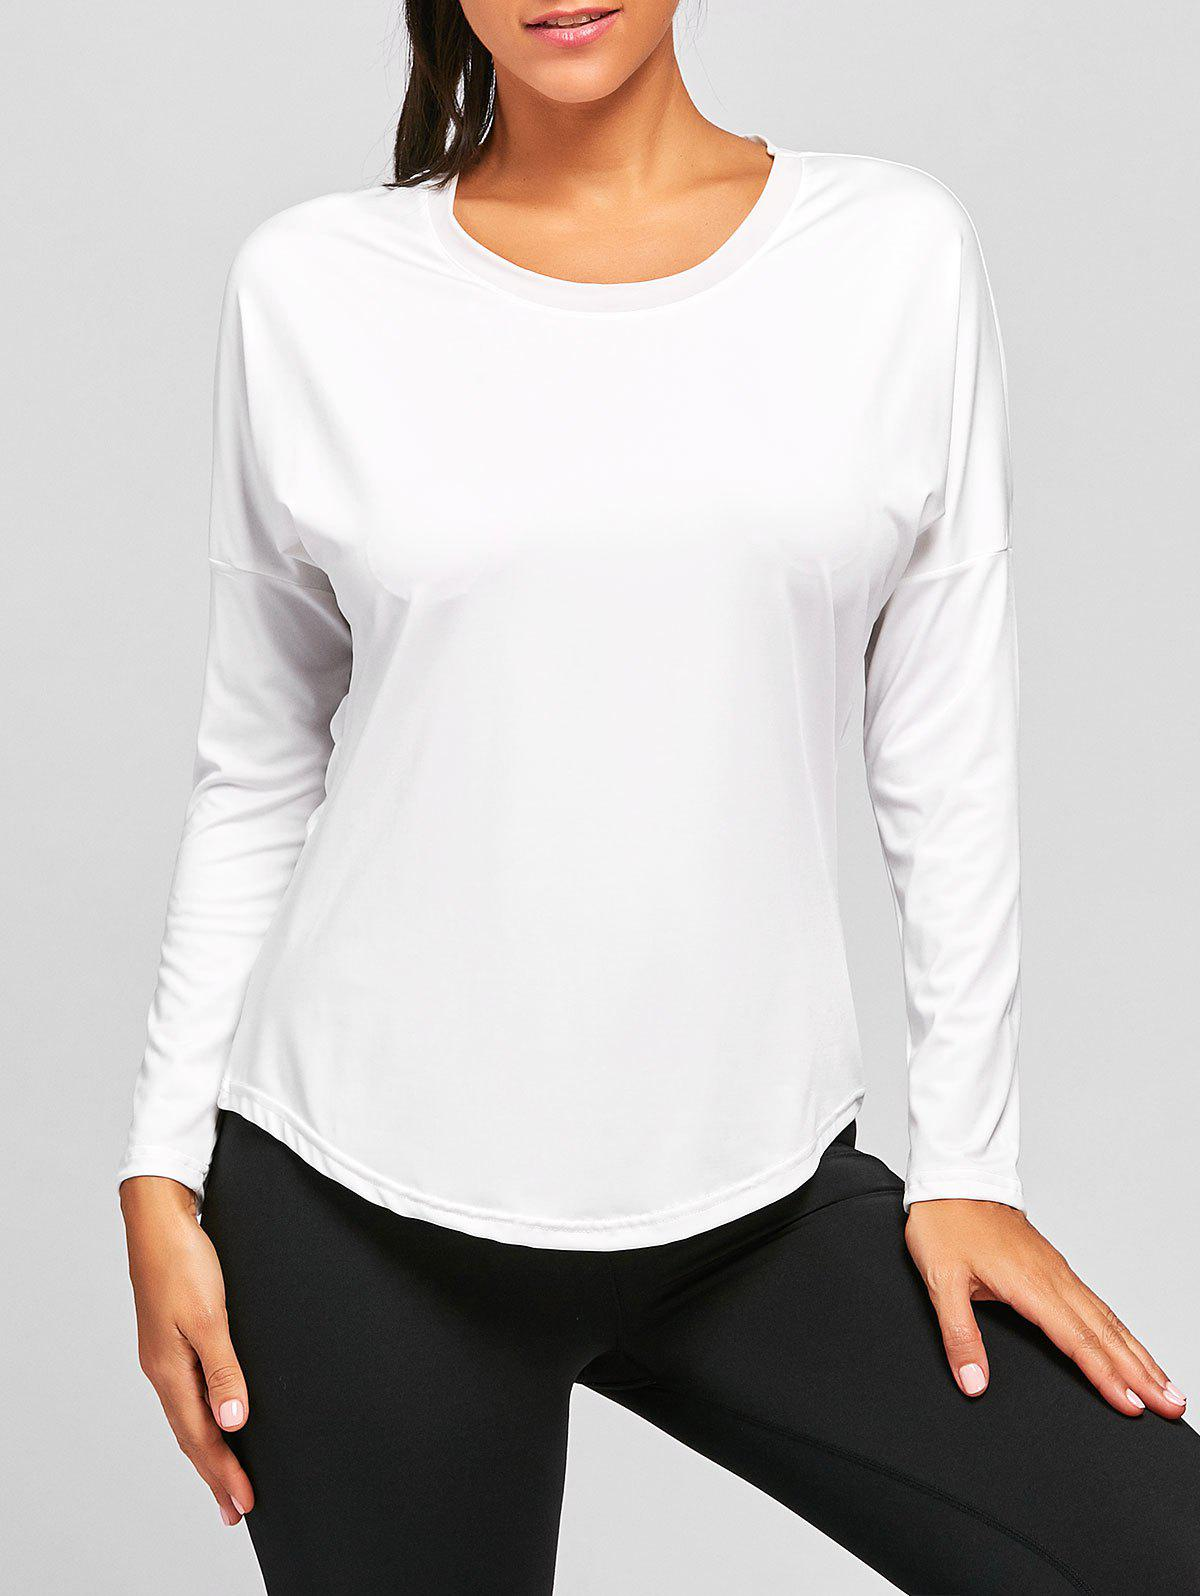 See Through Sports Long Sleeve T-shirt - WHITE M